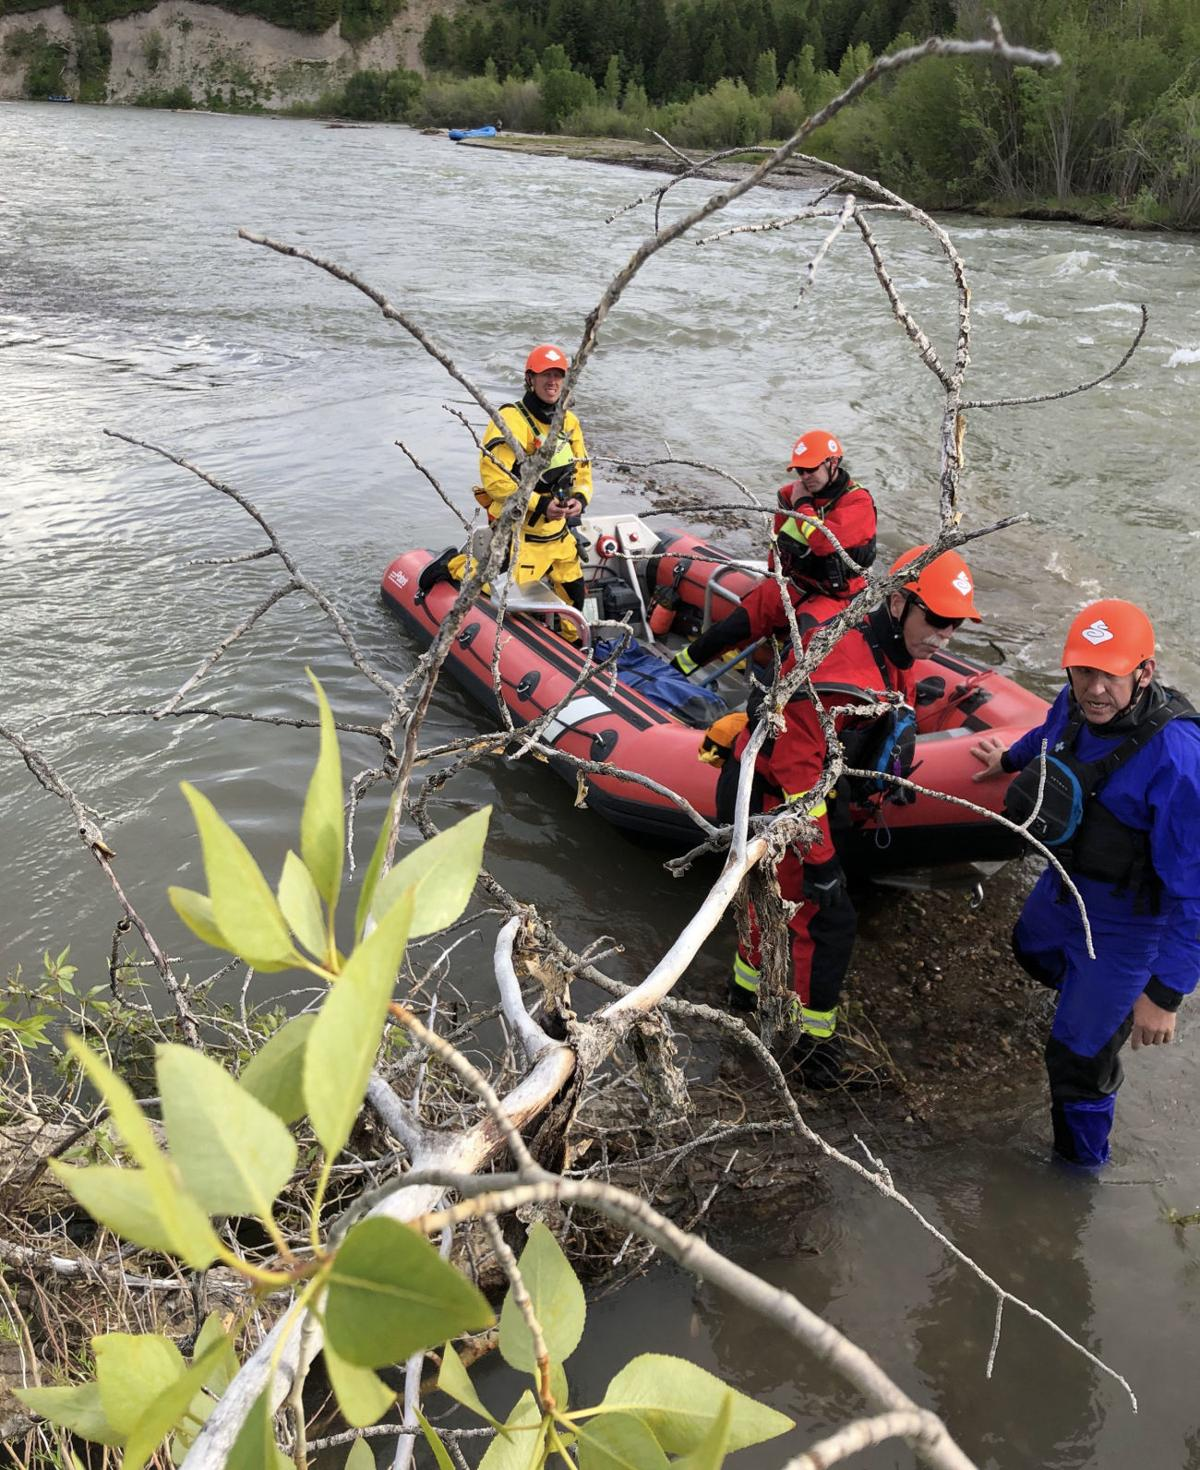 Snake River rescue